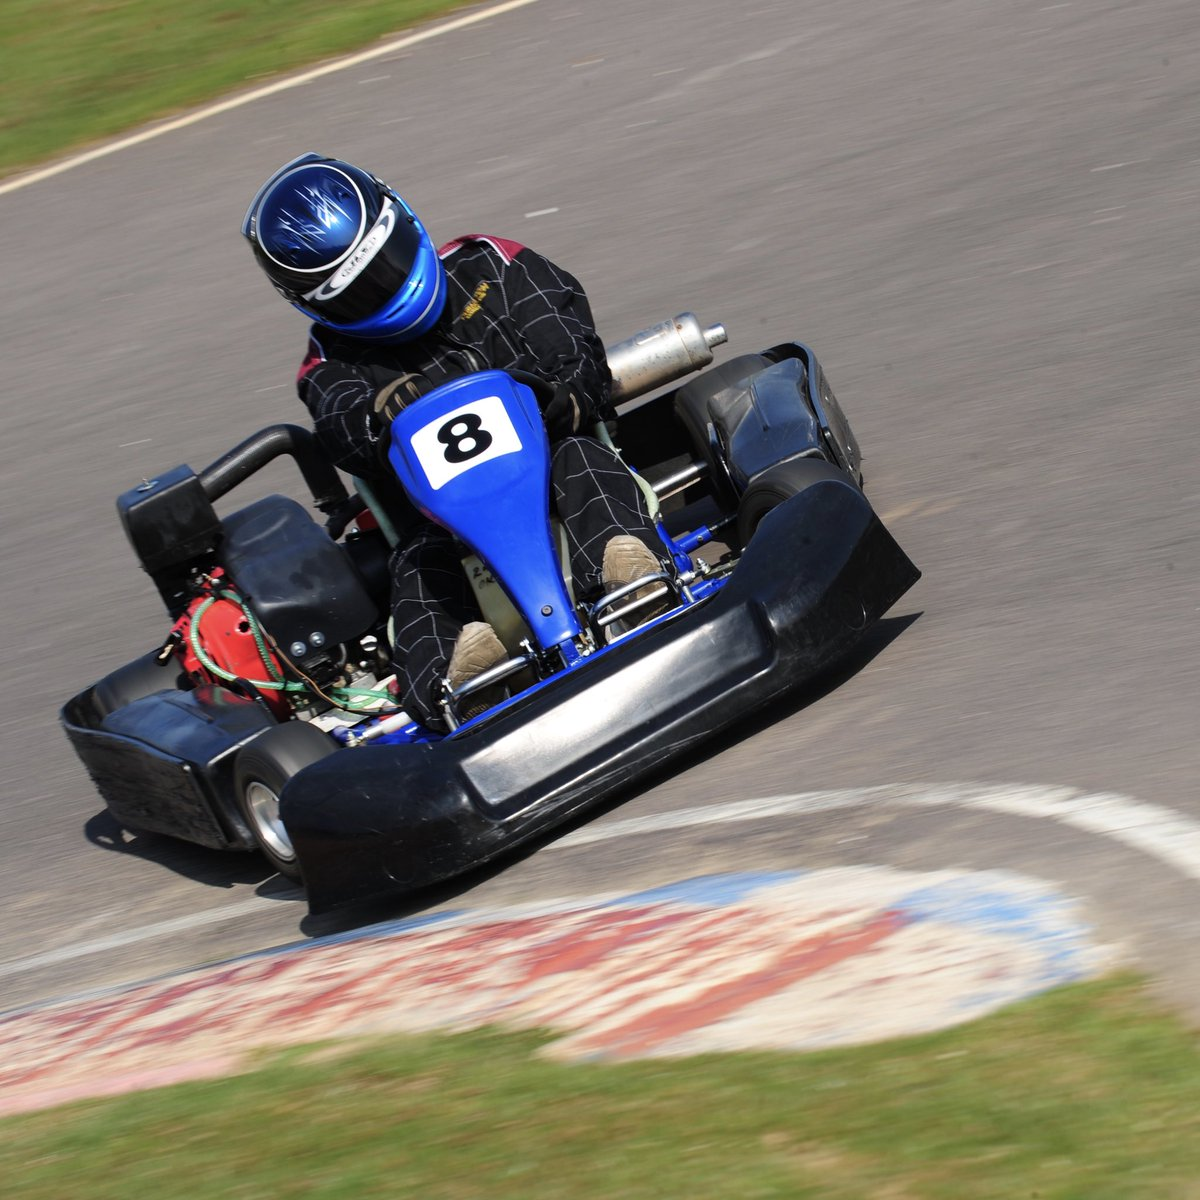 Who fancies going karting this weekend?! The Kart Centre will re-open from Fri (10th Jul). Both circuits will be open running arrive & drive sessions for adults, juniors & cadets (from 8 years-old).  Check out our new website for the latest availability: https://t.co/lH0q2Mih2h https://t.co/sP6y3shCi1